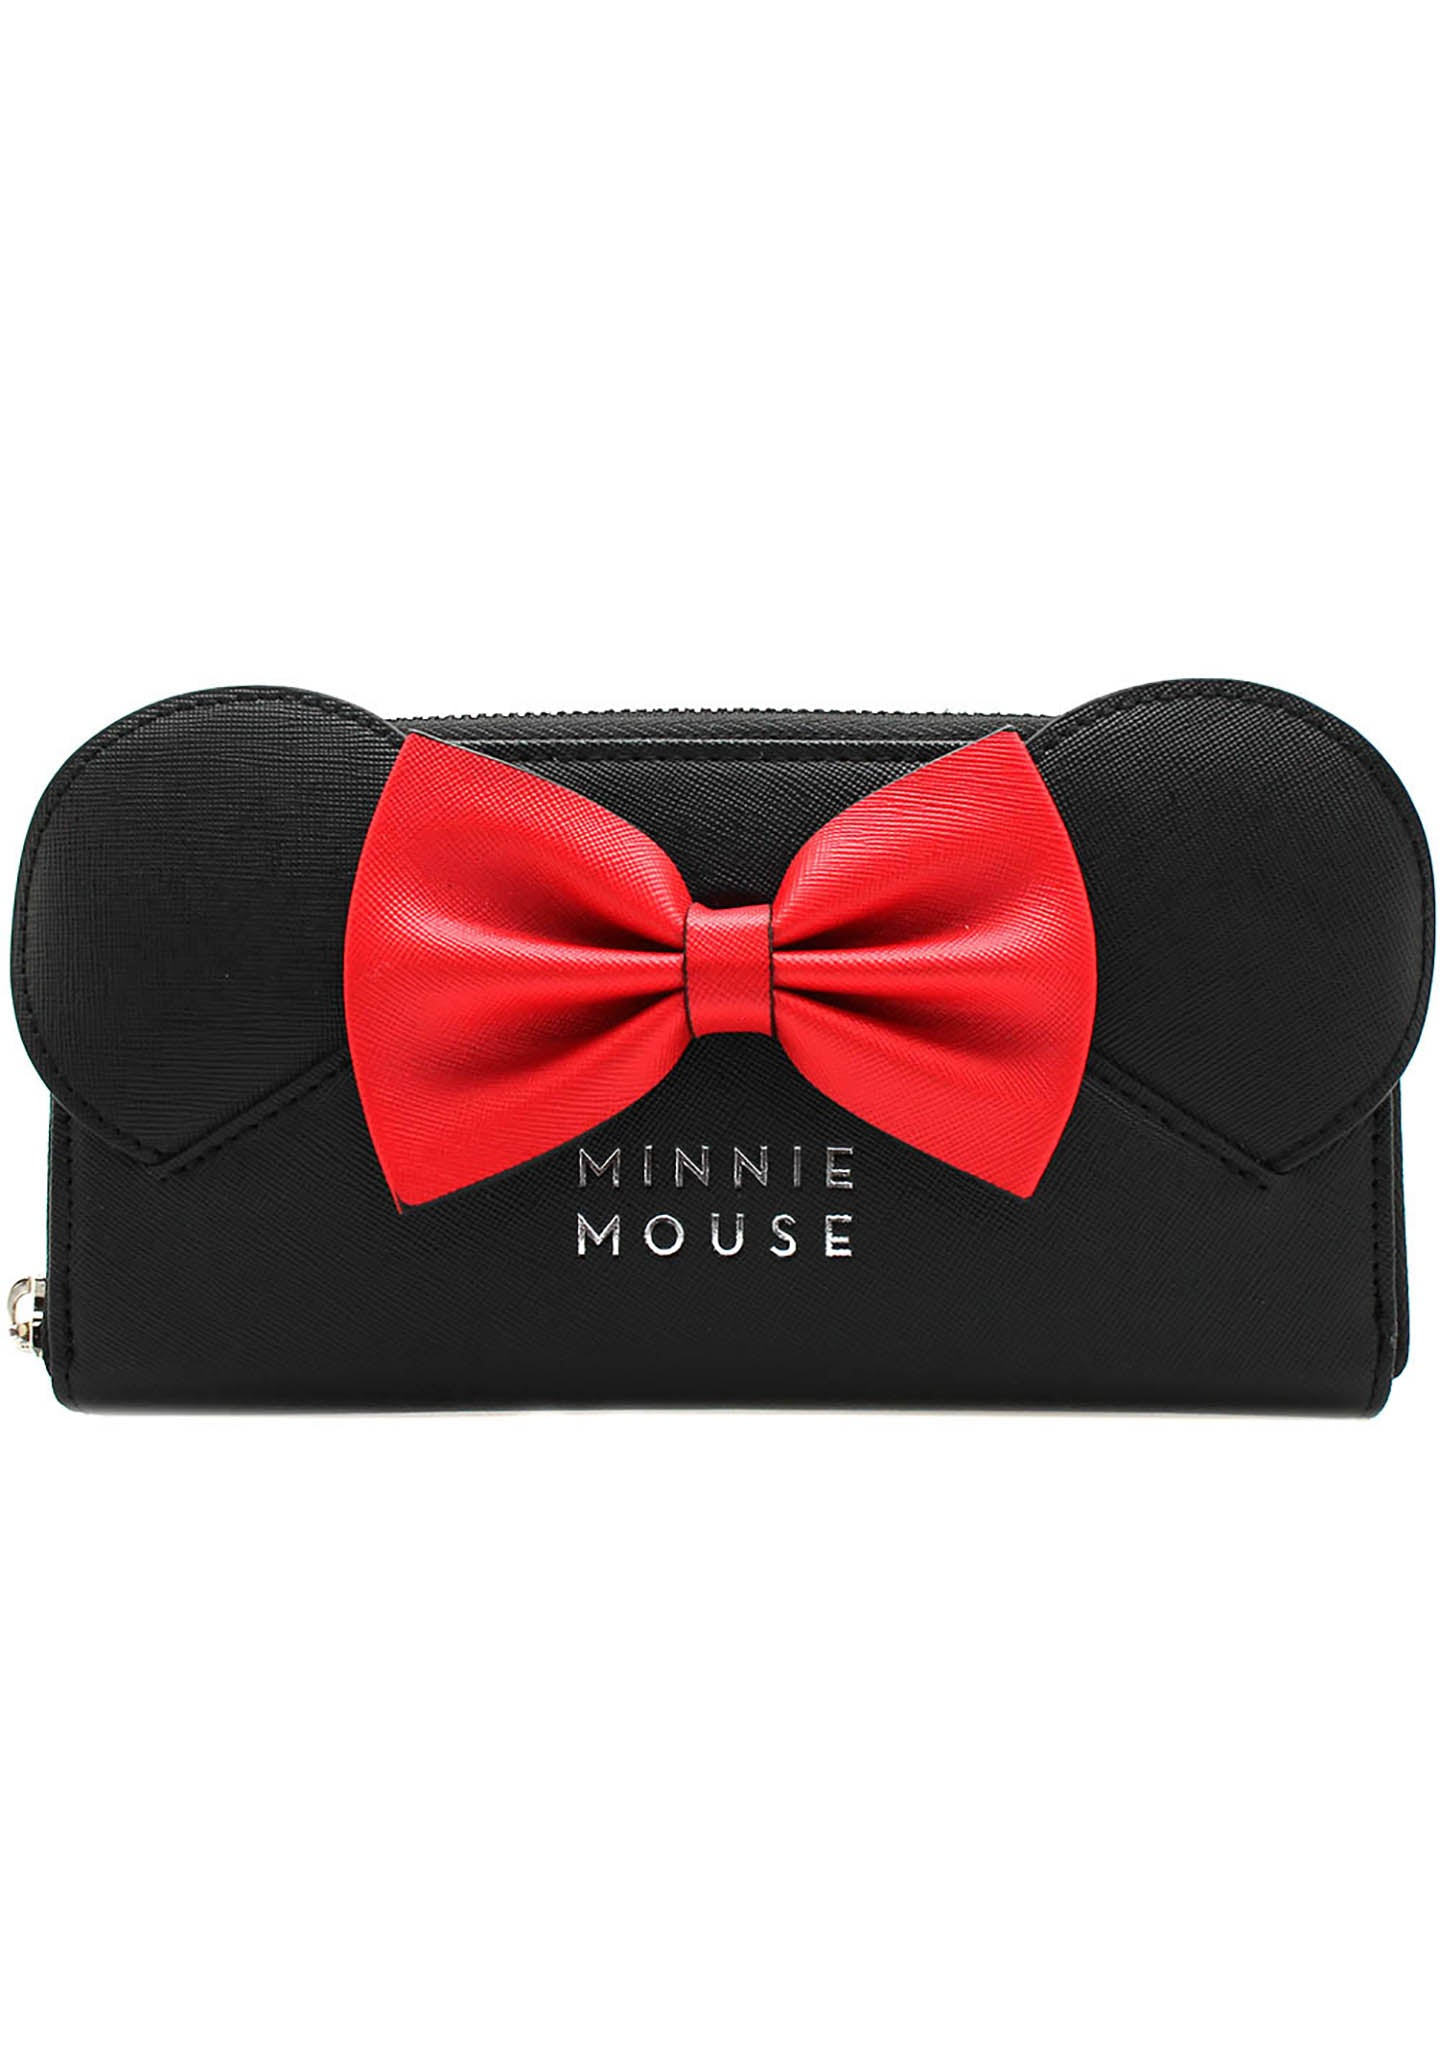 x Disney Minnie Saffiano Bow Zip Wallet